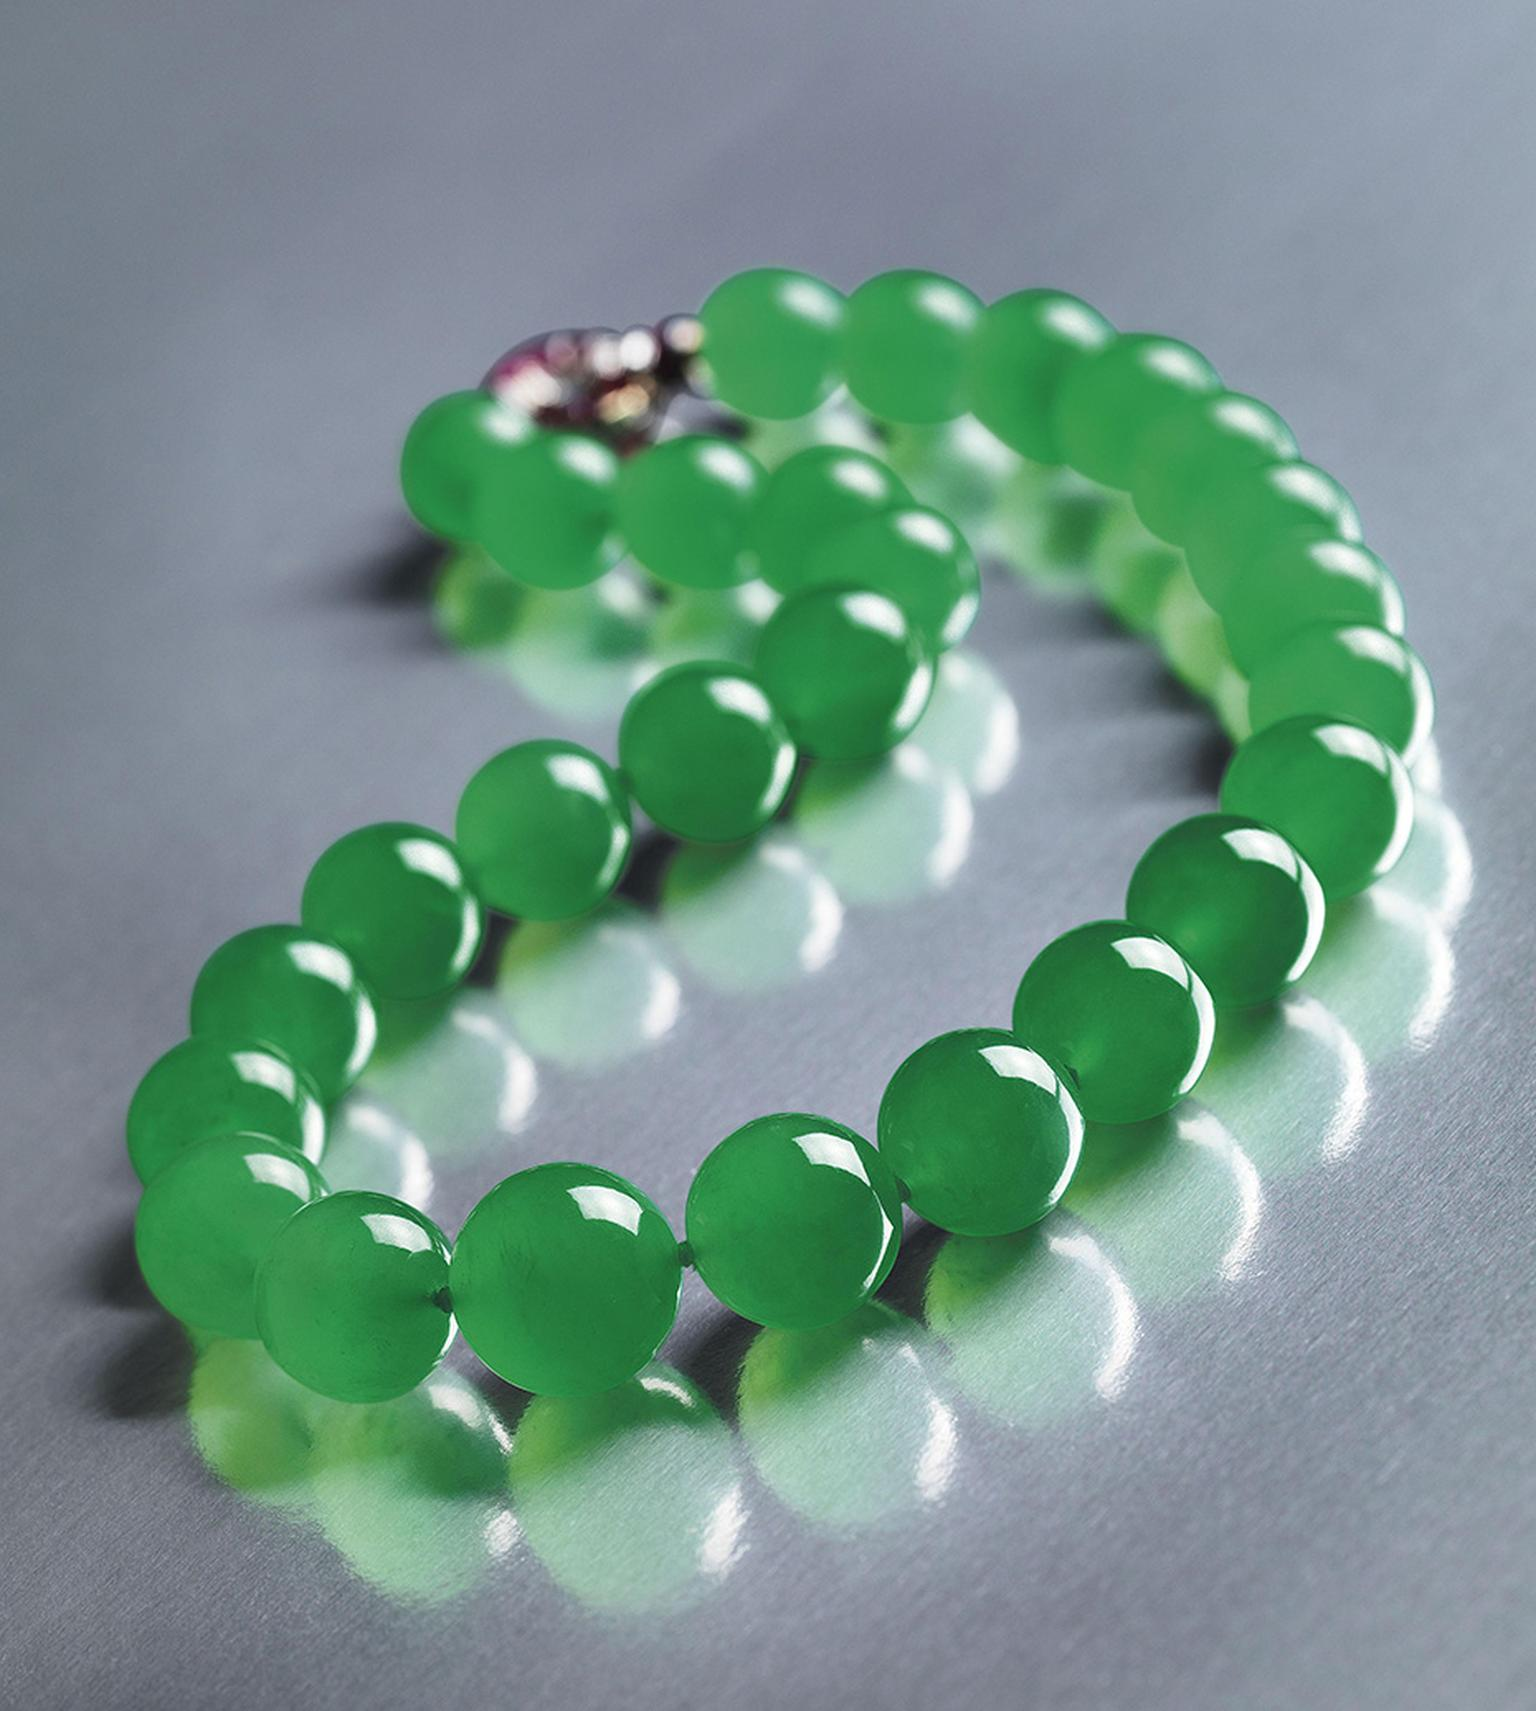 Made up of 27 Qing jadeite beads, The Hutton-Mdivani necklace was formerly the property of socialite and heiress Barbara Hutton